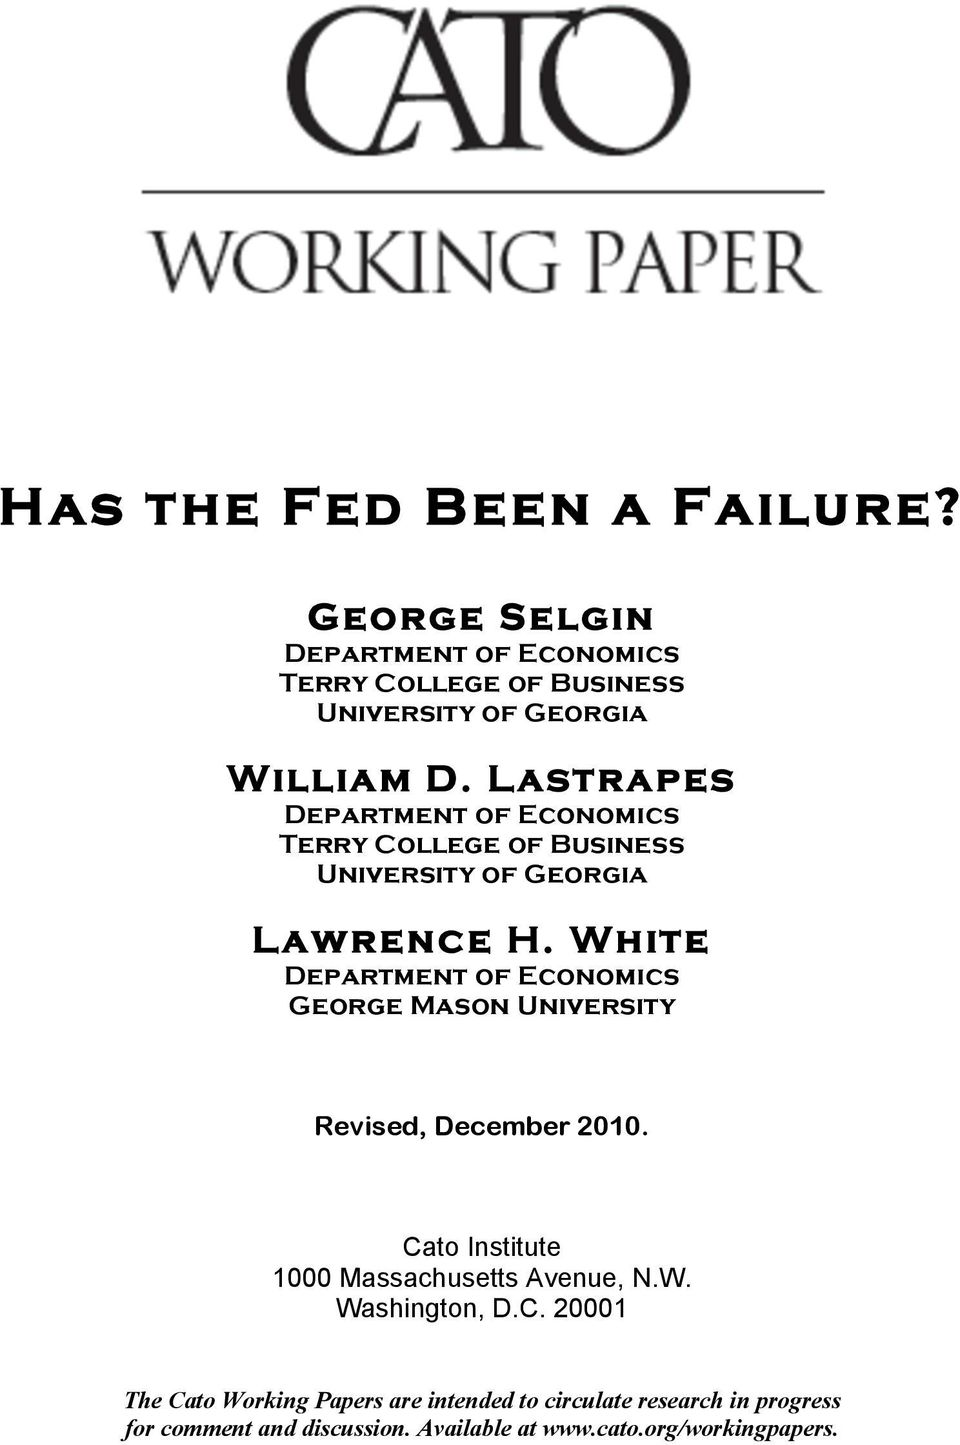 White Department of Economics George Mason University Revised, December 2010. Cato Institute 1000 Massachusetts Avenue, N.W. Washington, D.